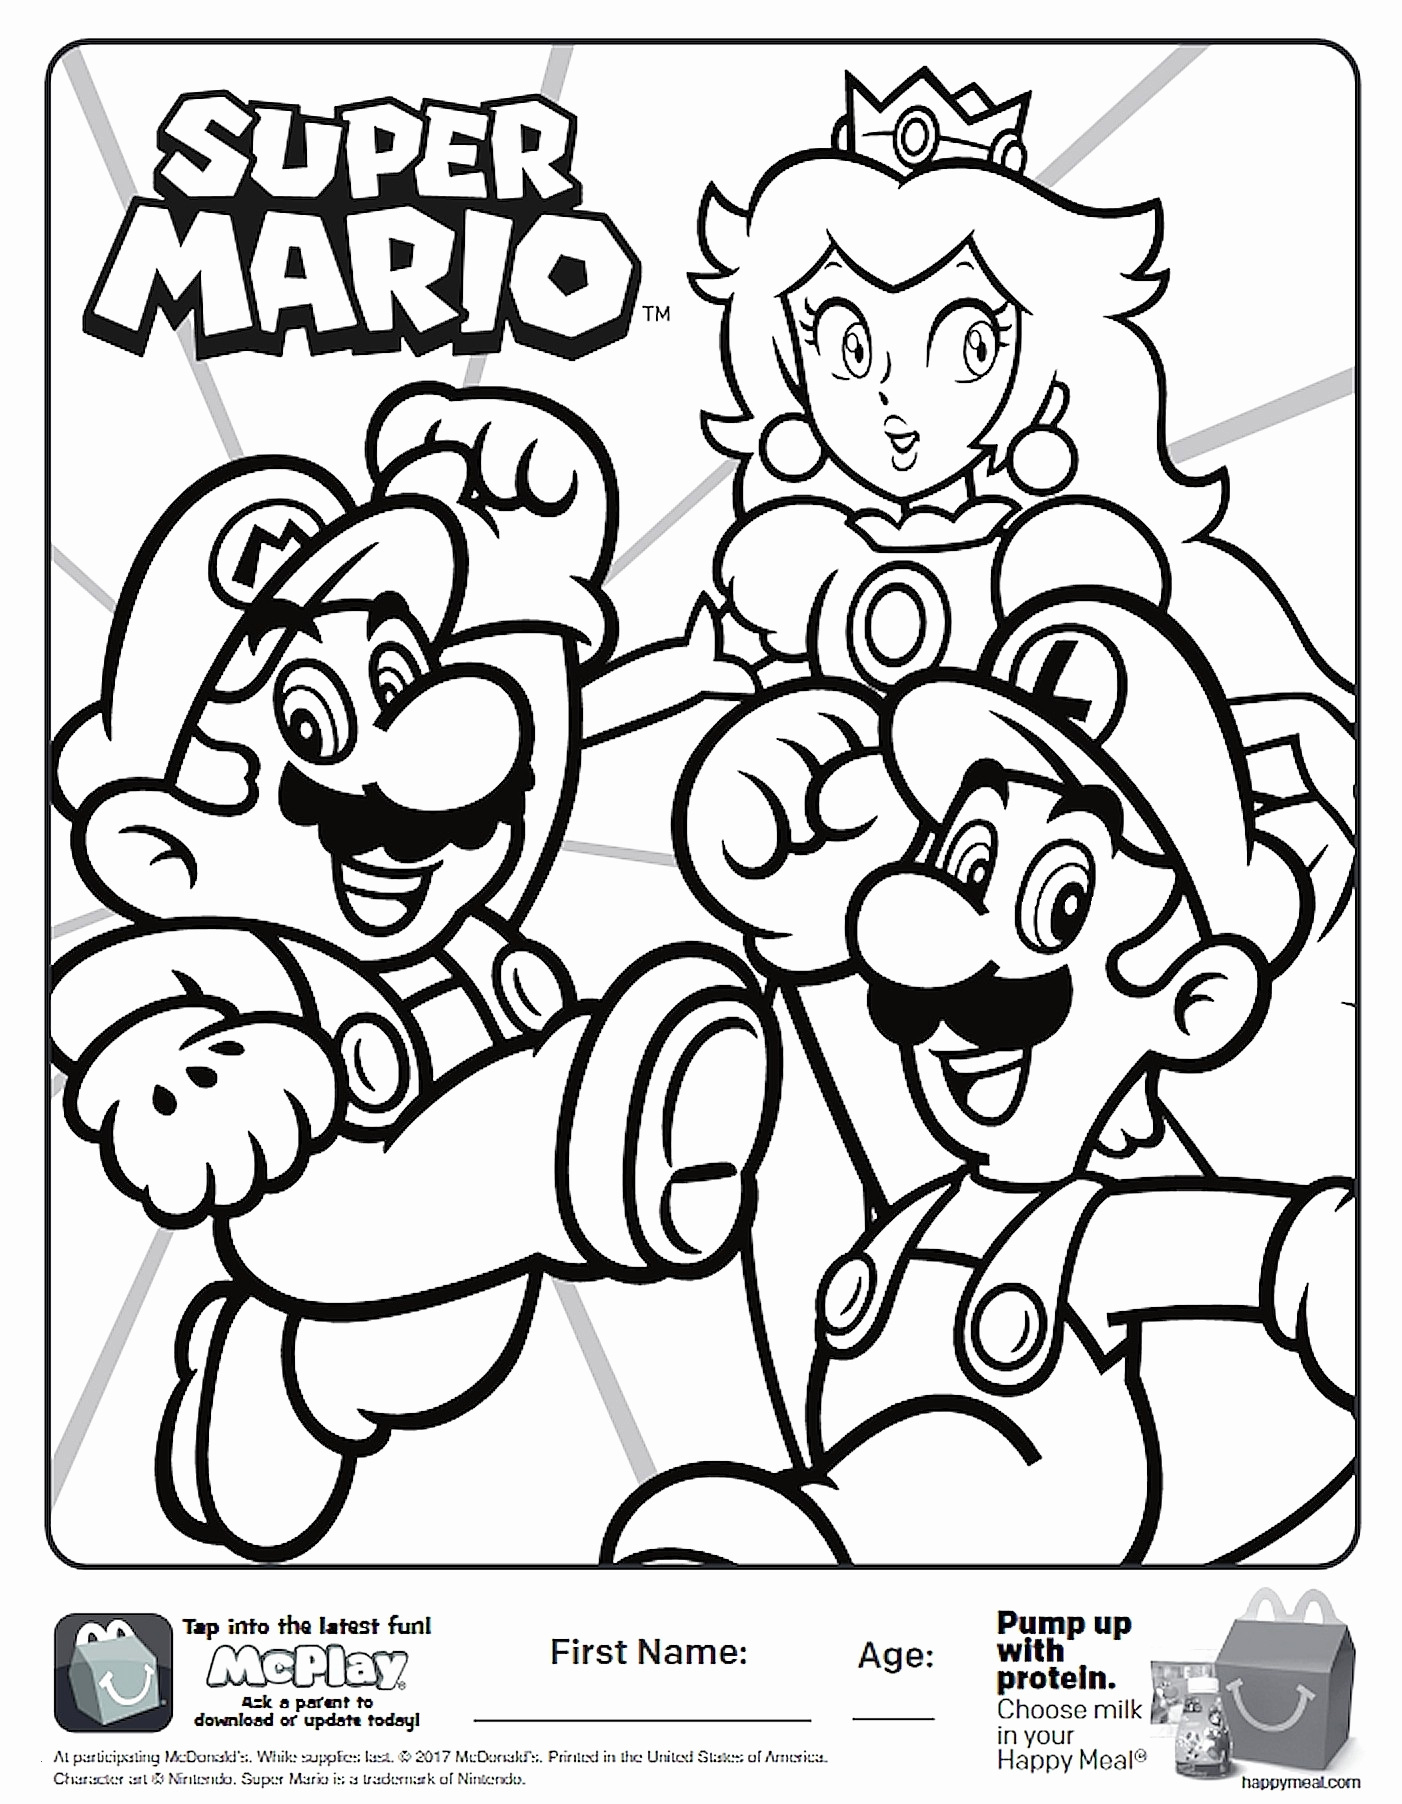 pikachu coloring pages Collection-Pikachu Coloring Pages Pikachu Coloring Pages Fabulous Pikachu Coloring Pages Verikira 10-m